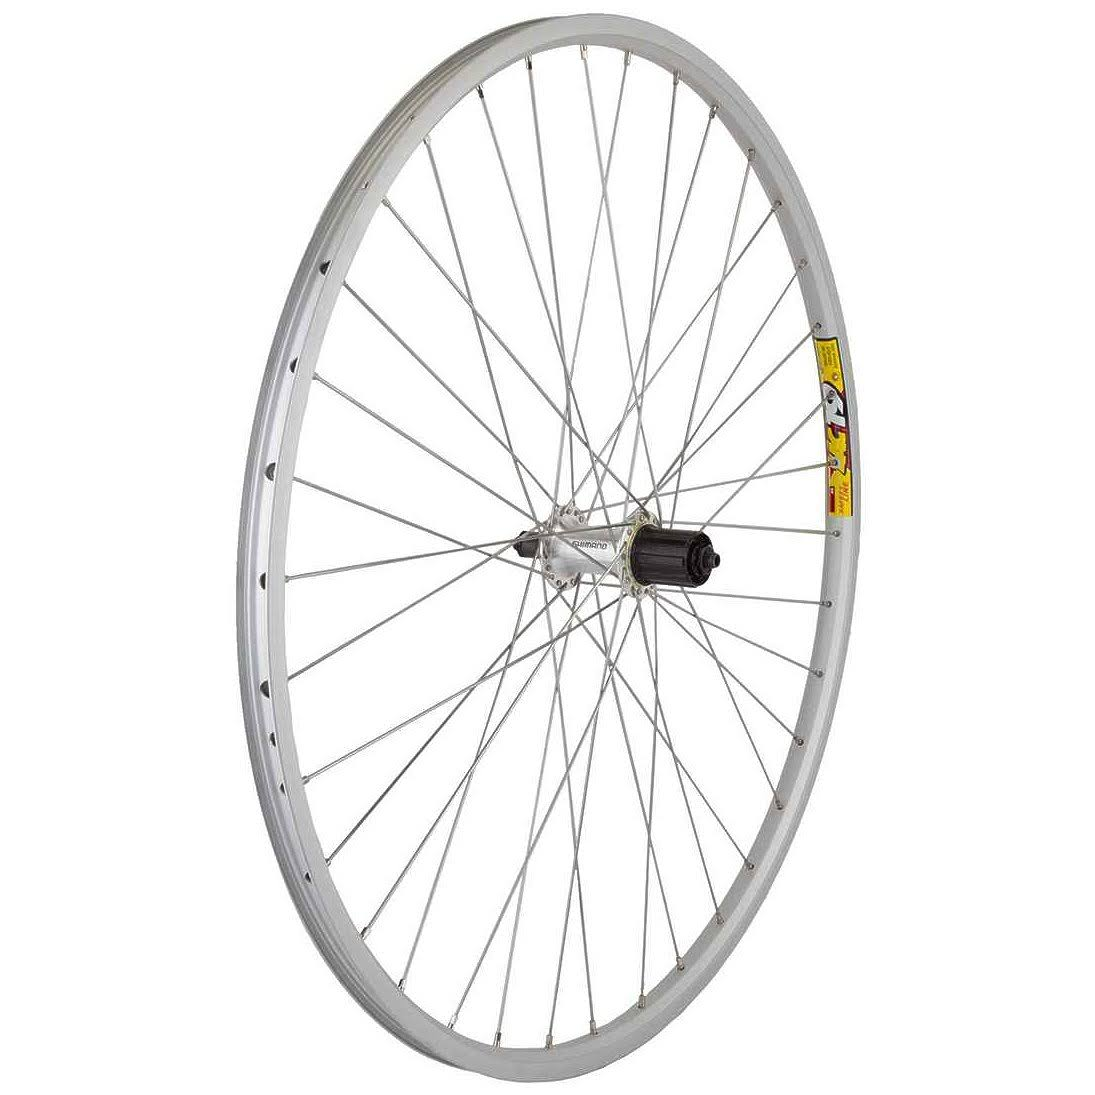 Wheel Master 700c Rear Wheel - 36H, 8 Speed Cassette Hub, Silver/Silver/Steel